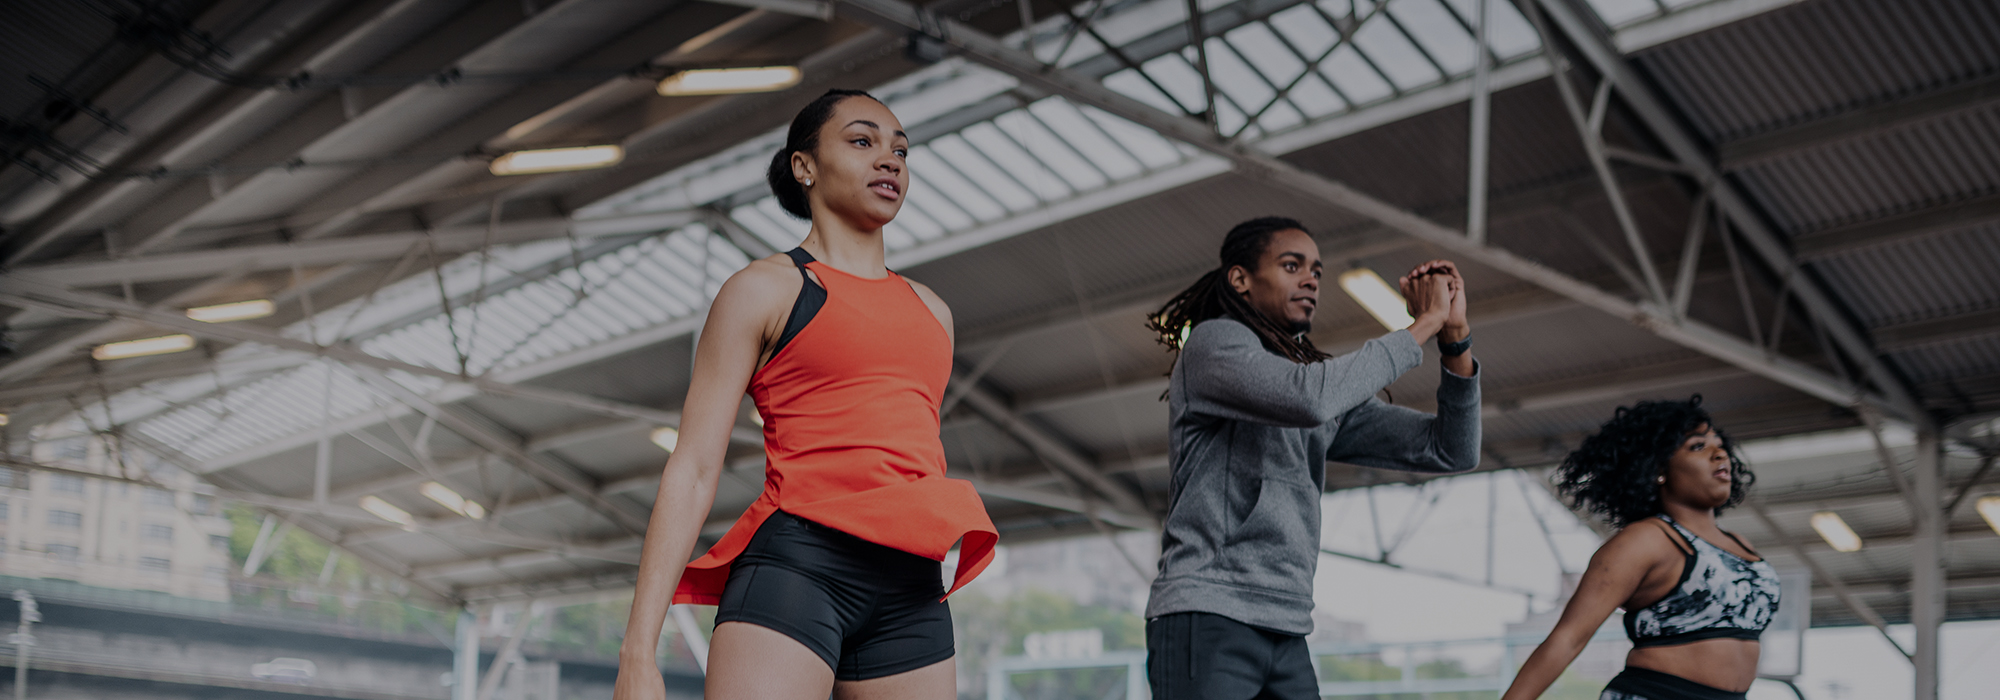 FUNCTIONAL FITNESS IS THE NEW #1CANADIAN FITNESS TREND EXPECTED FOR 2018